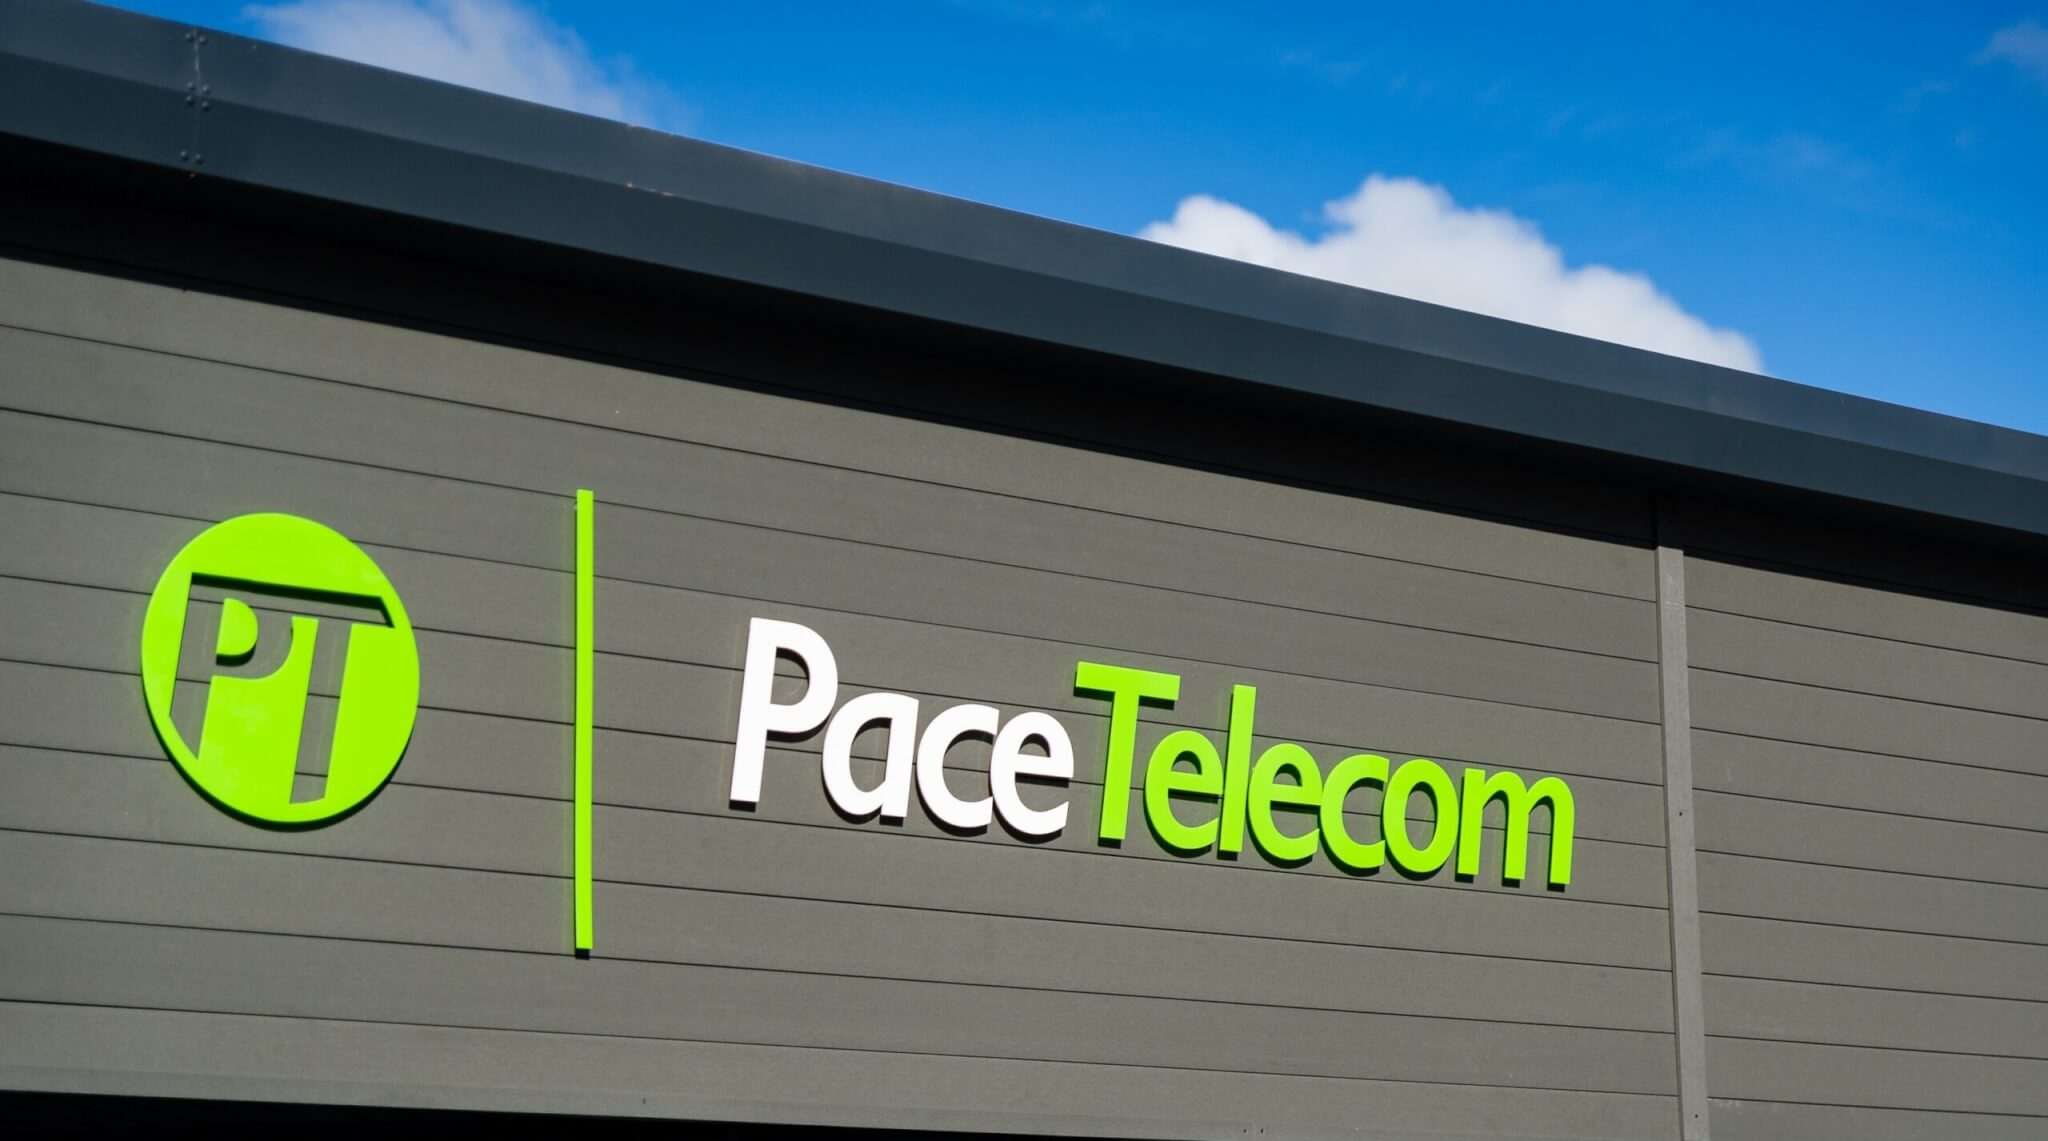 Pace Telecom Beyond Corporate